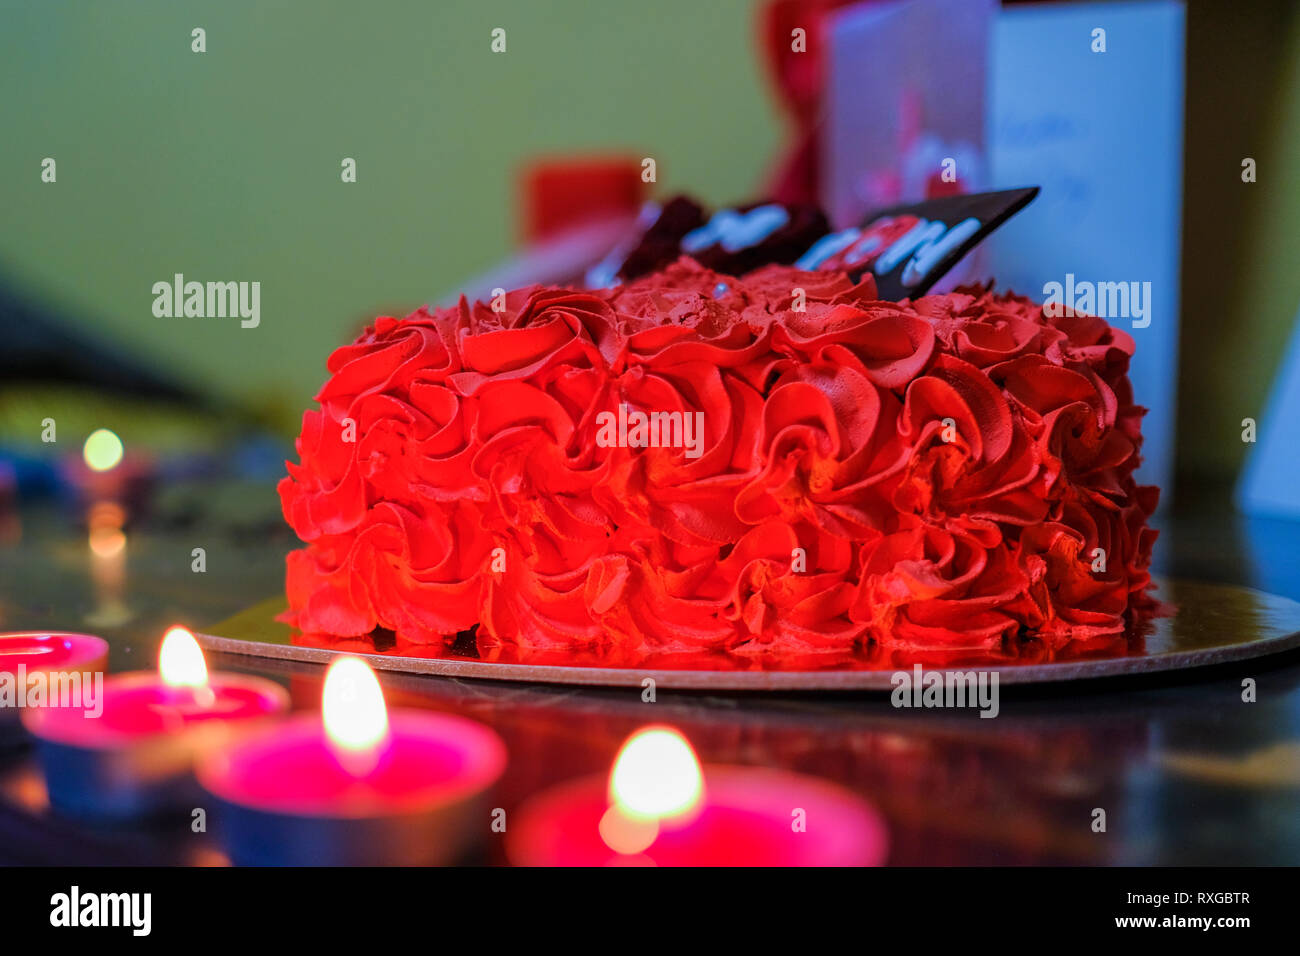 Red Cake With Blurred Candles